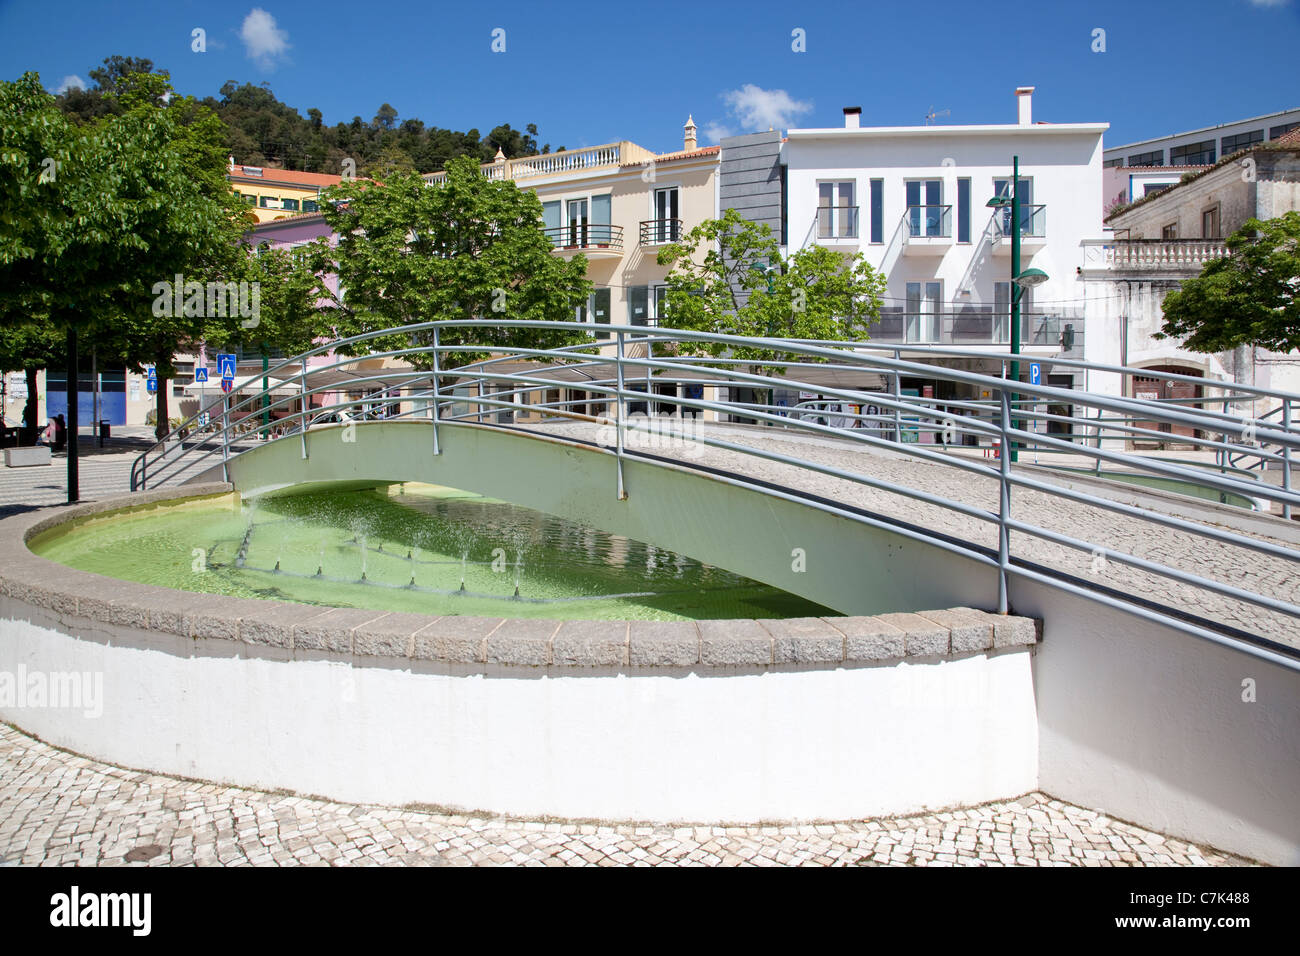 Portugal, Algarve, Monchique, Bridge & Fountain - Stock Image